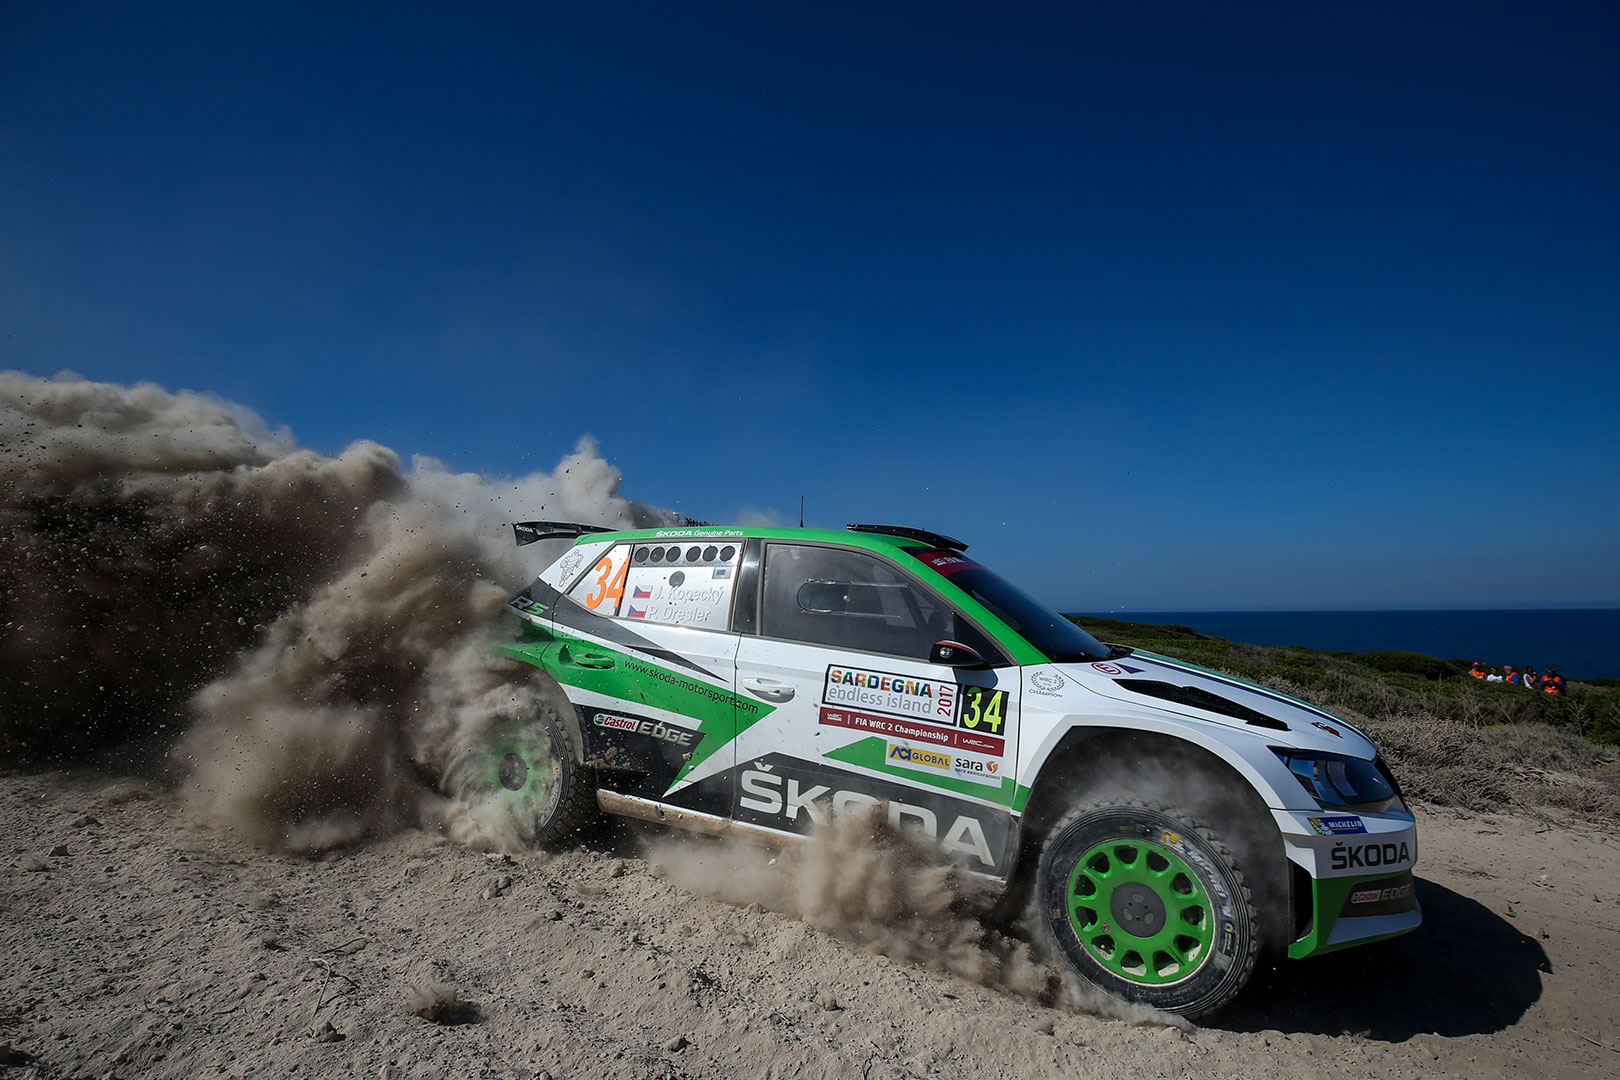 Rally Italia Sardegna 2018: All You Need to Know Before Rally Starts